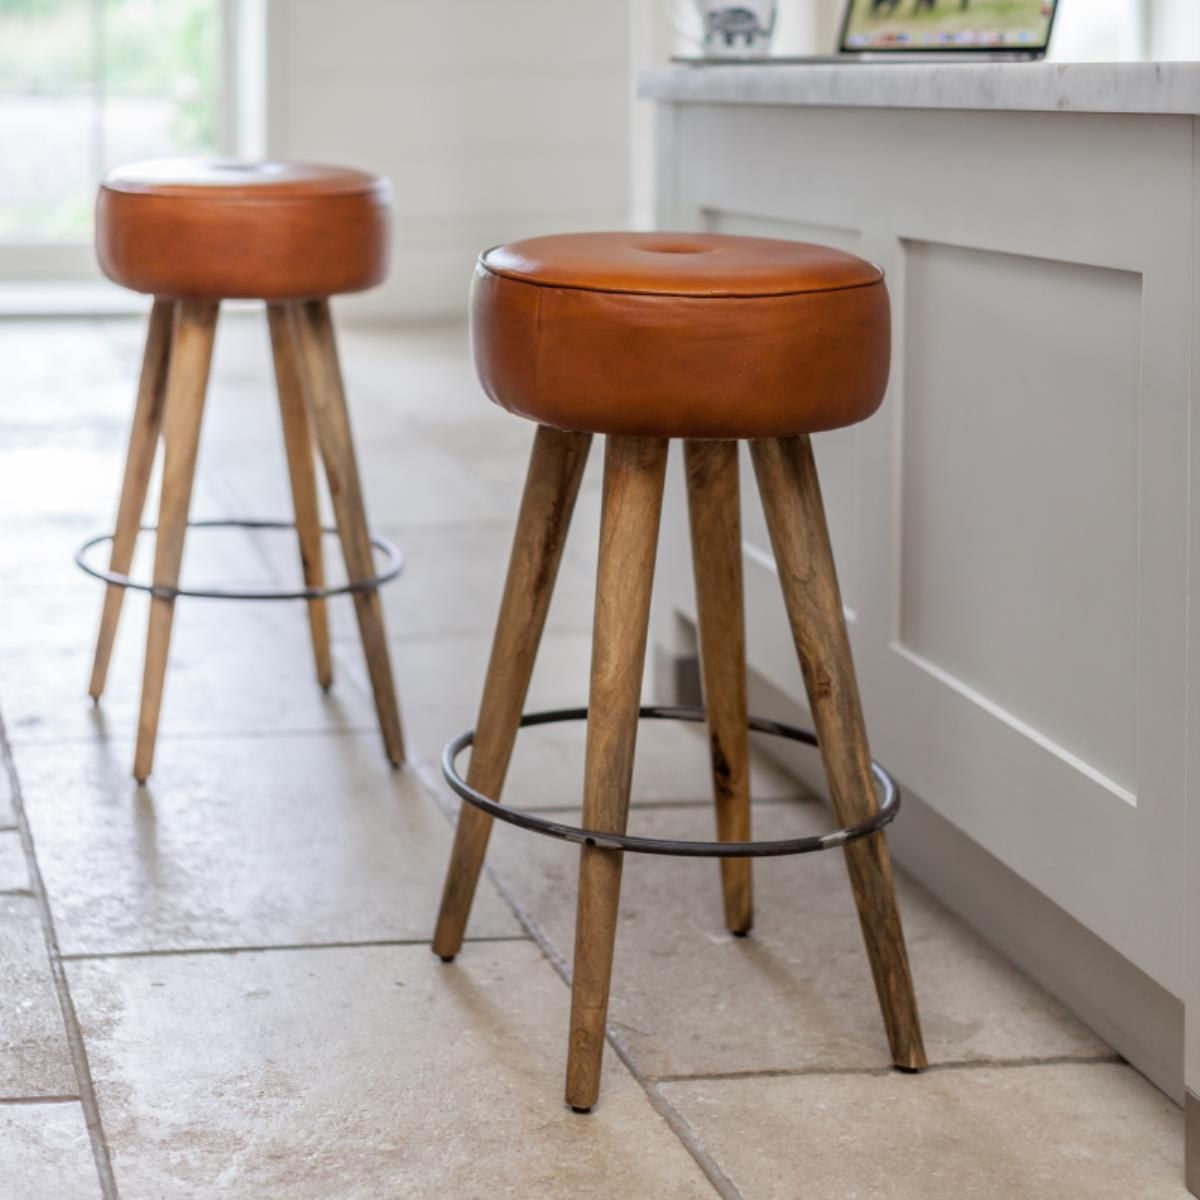 Leather Round Bar Stool Bar Stools Leather Bar Stools Round Bar